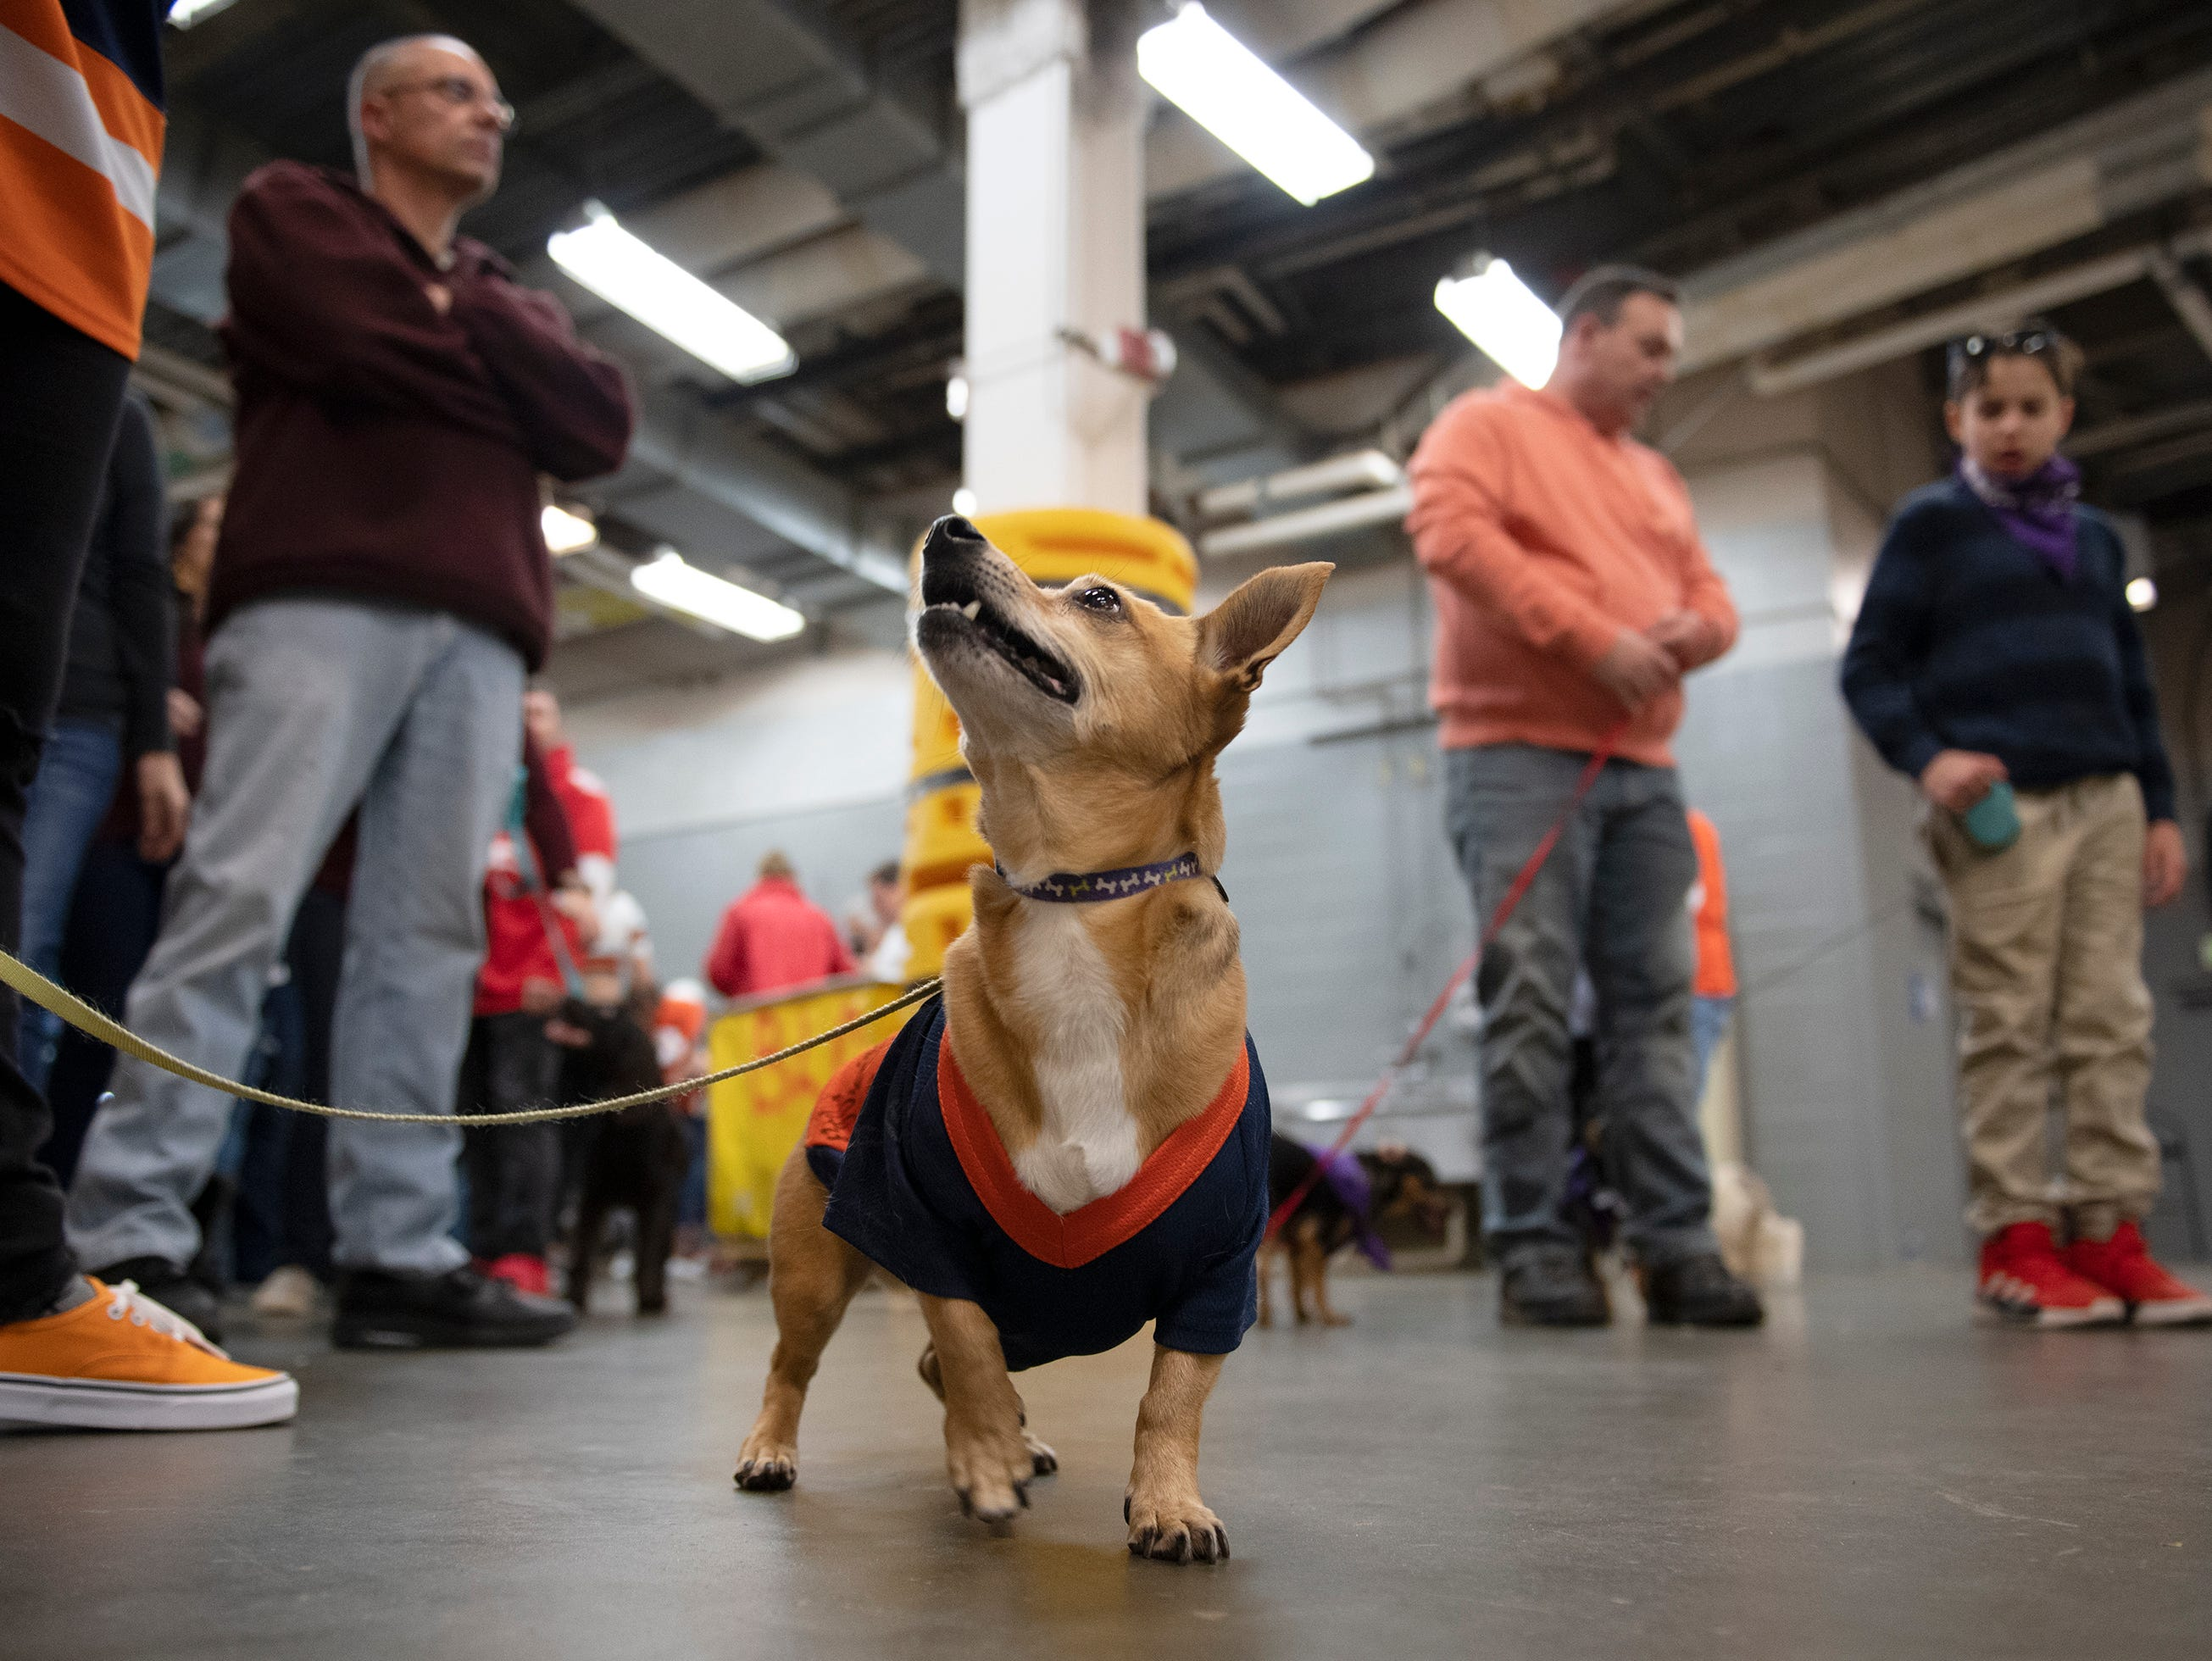 Meatbol waits with Rebecca DaSilva for the start of a dog race during intermission at the Greenville Swamp Rabbits game against the Florida Everblades at Bon Secours Wellness Arena Saturday, Feb. 2, 2019.